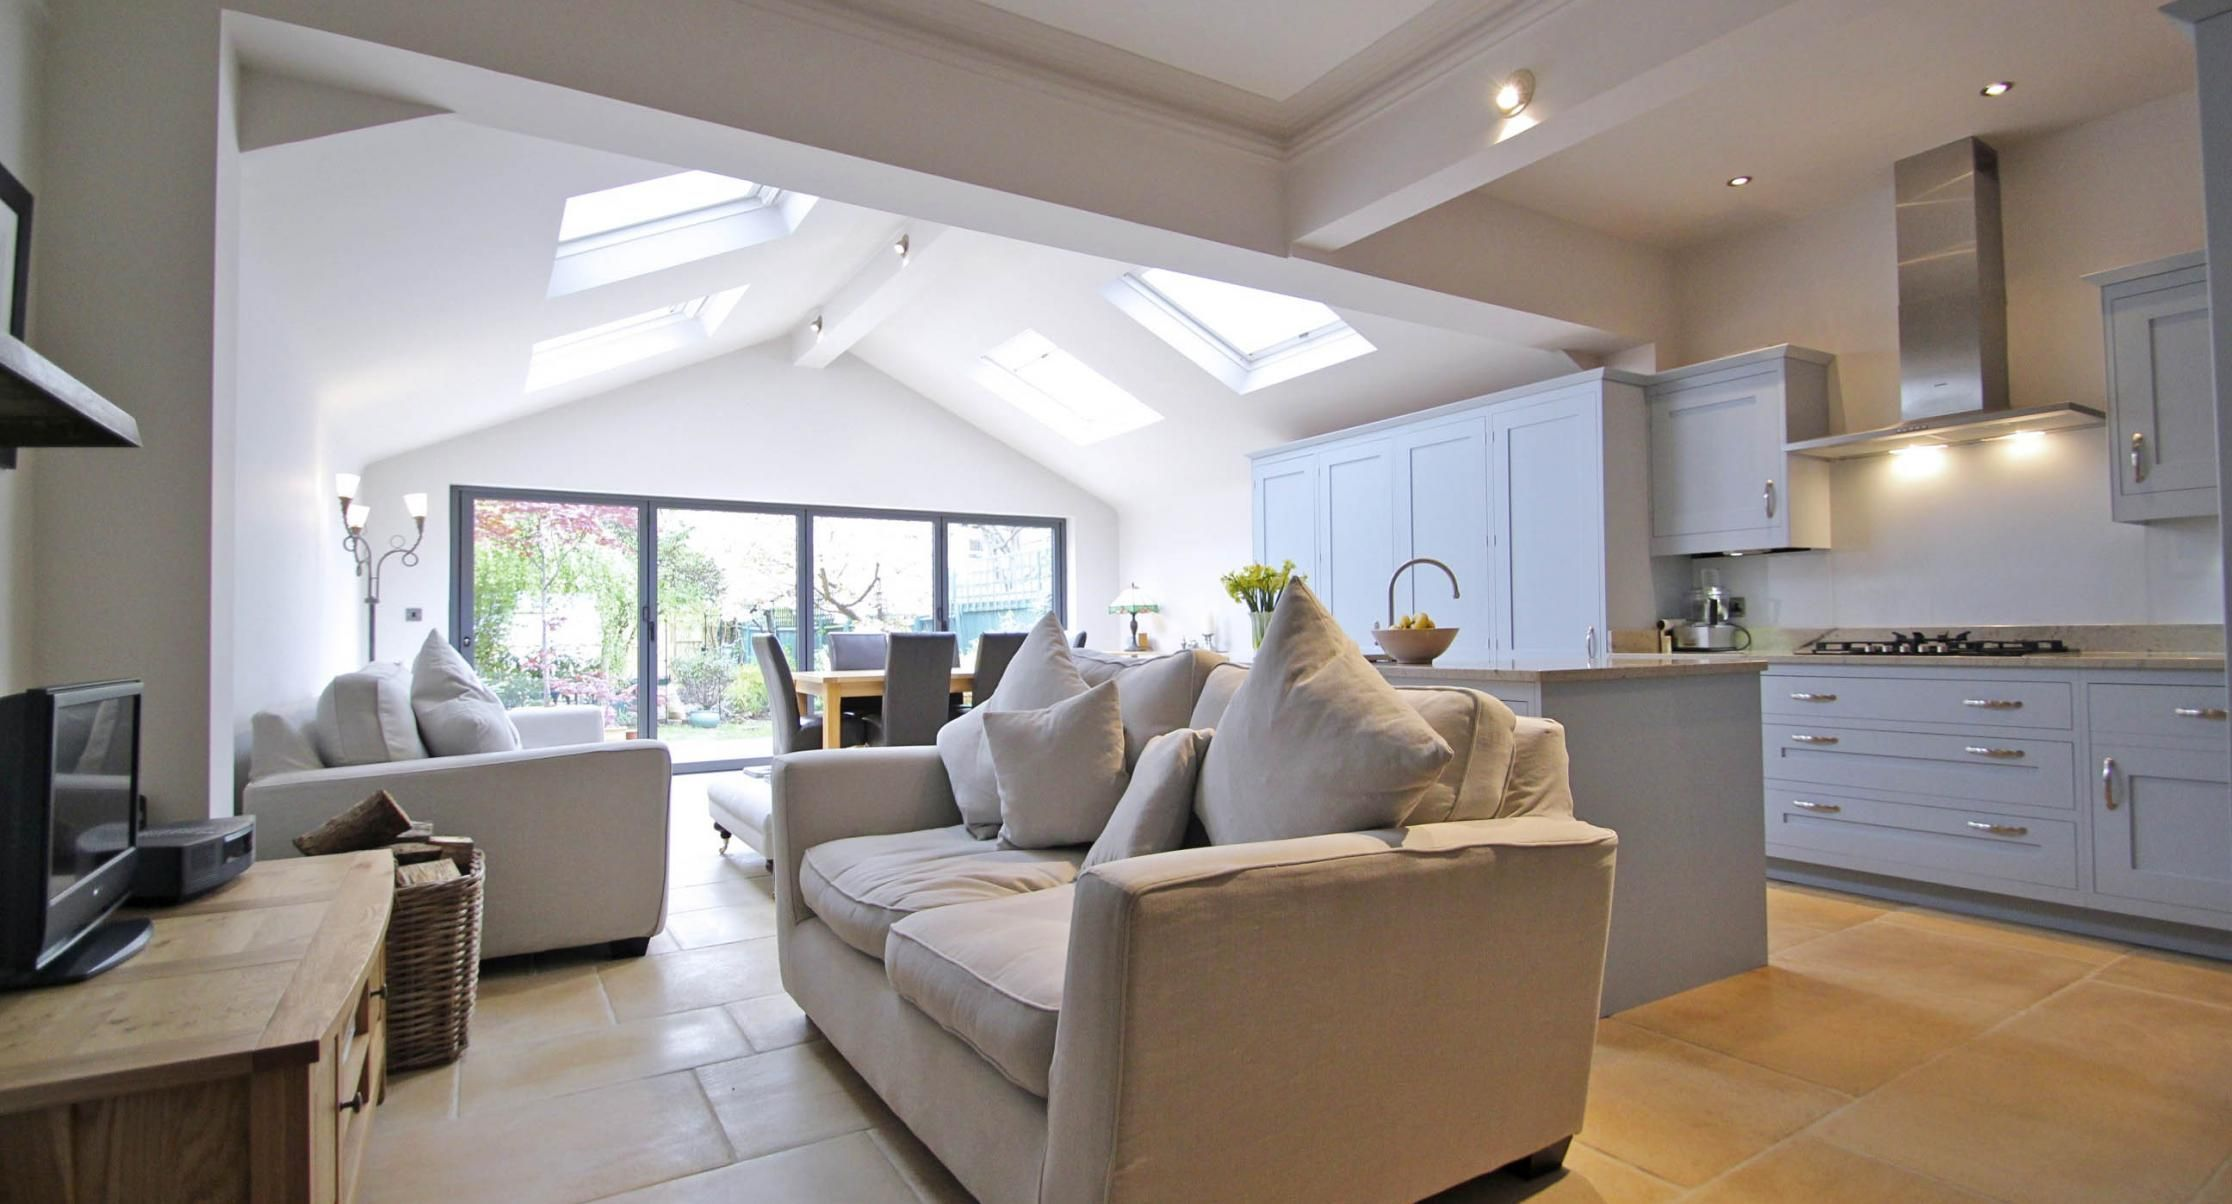 Theartofbuildingcouk Bingcomimages Description Extension Searched Ceiling Created Vaulted Lights Open Plan Kitchen Living Room Kitchen Extension Home